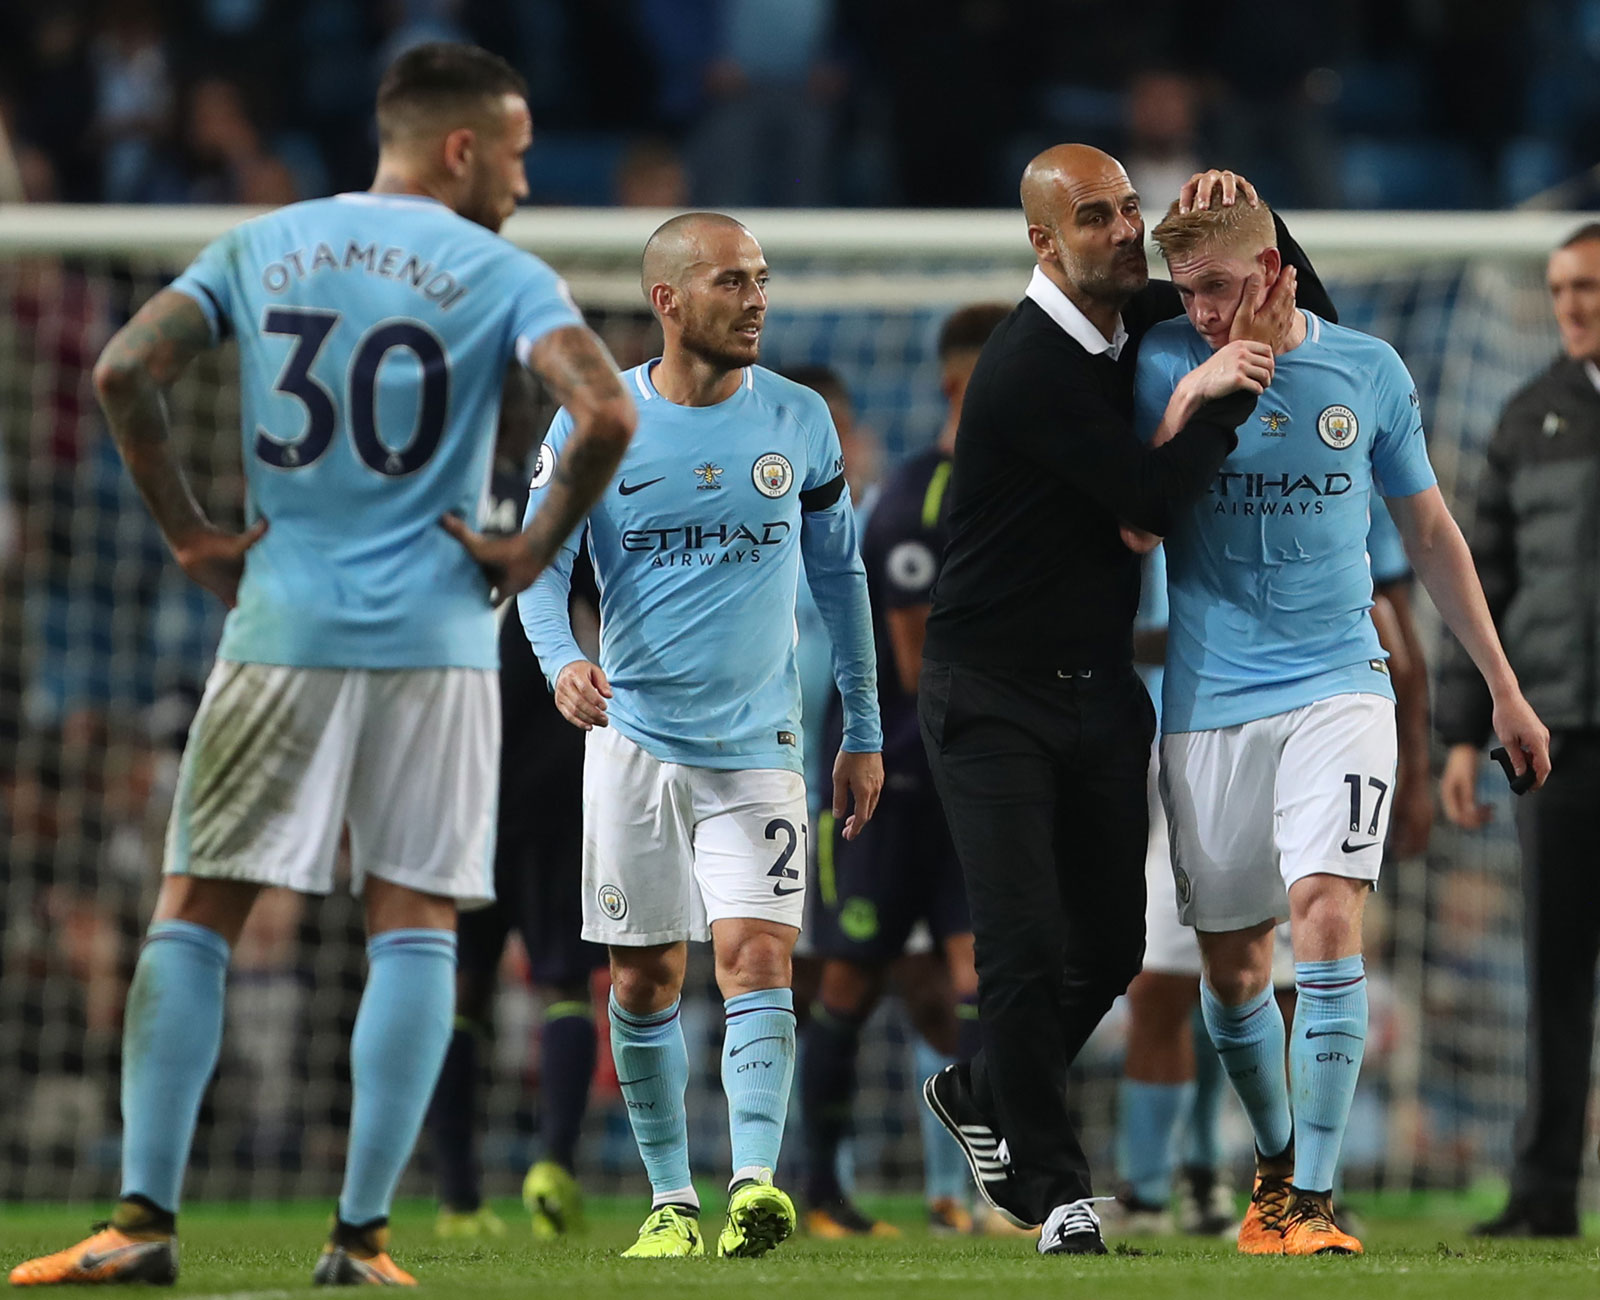 Kevin De Bruyne: 'Manchester City, Manchester United for Premier League title'